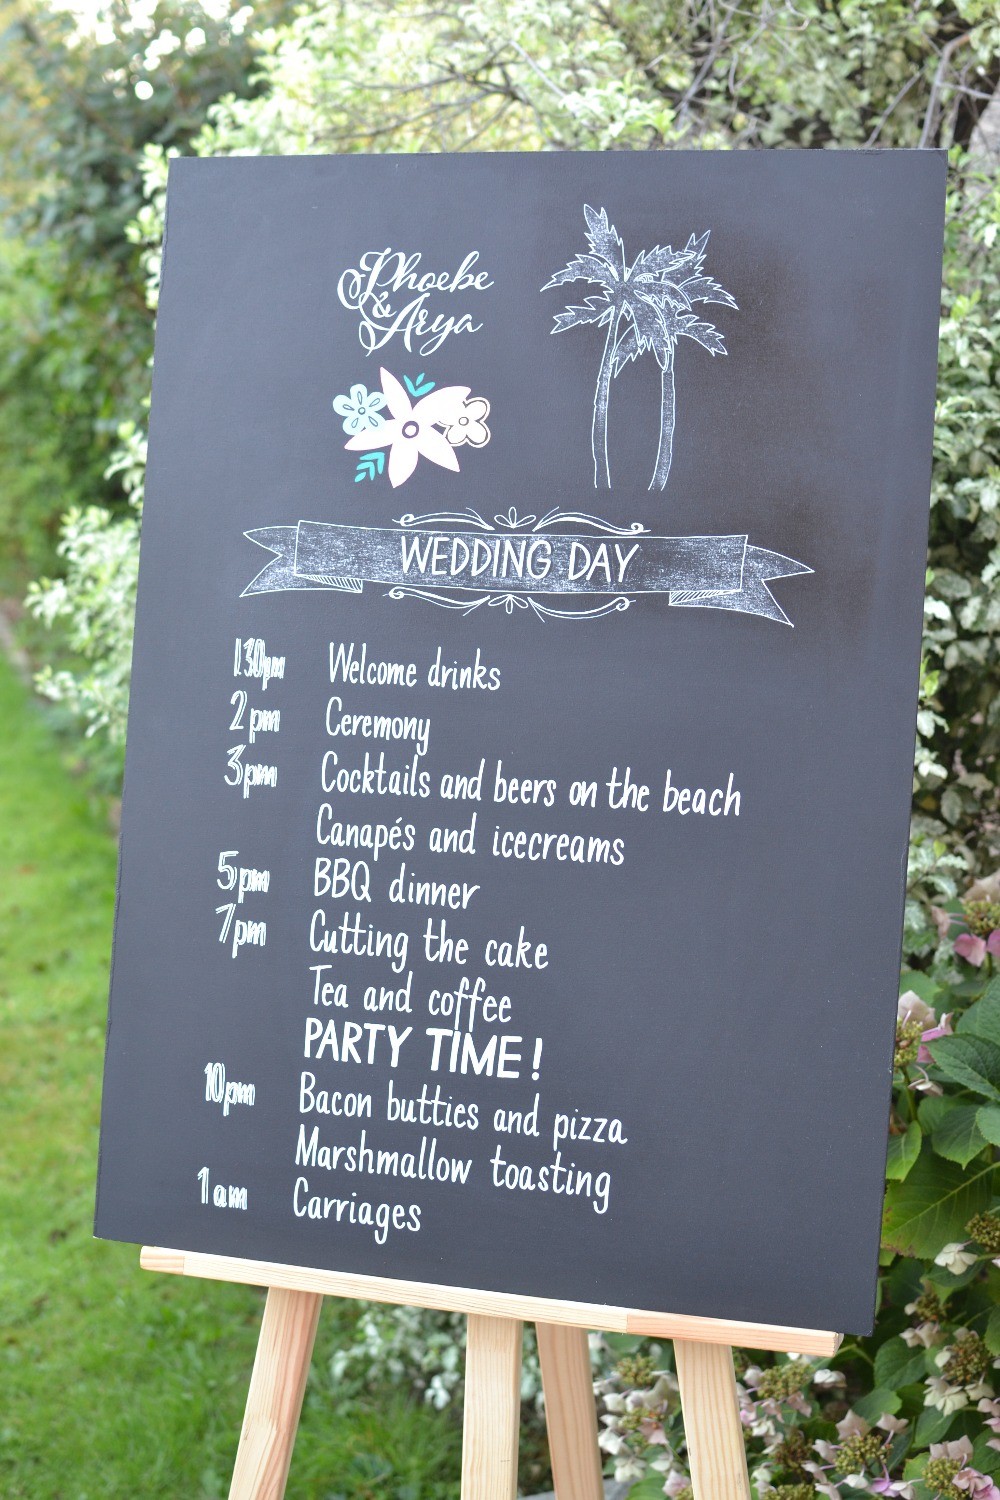 Phoebe & Arya Chalkboard Signs - August 2016 (14)_edited